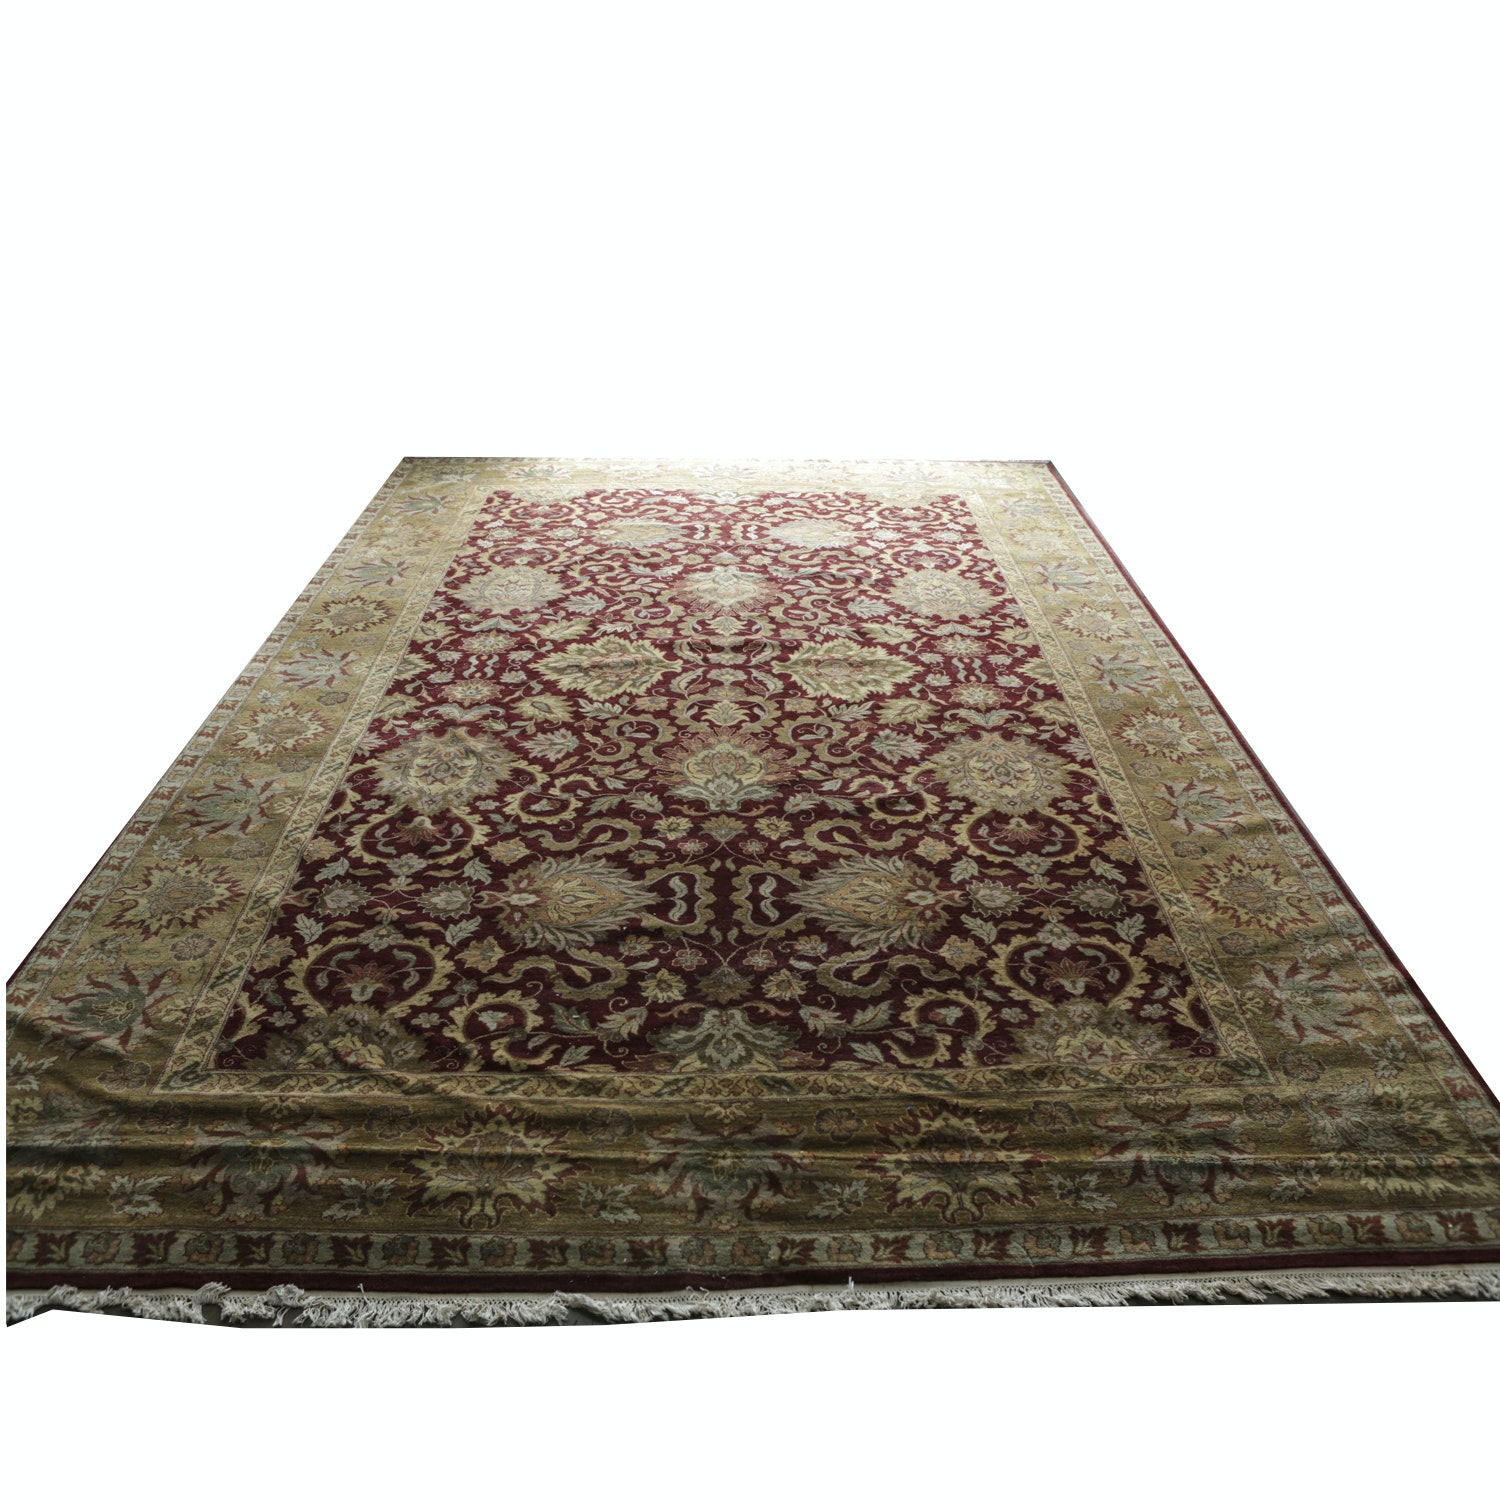 Palace-Sized Hand-Knotted Persian Sultanabad Area Rug